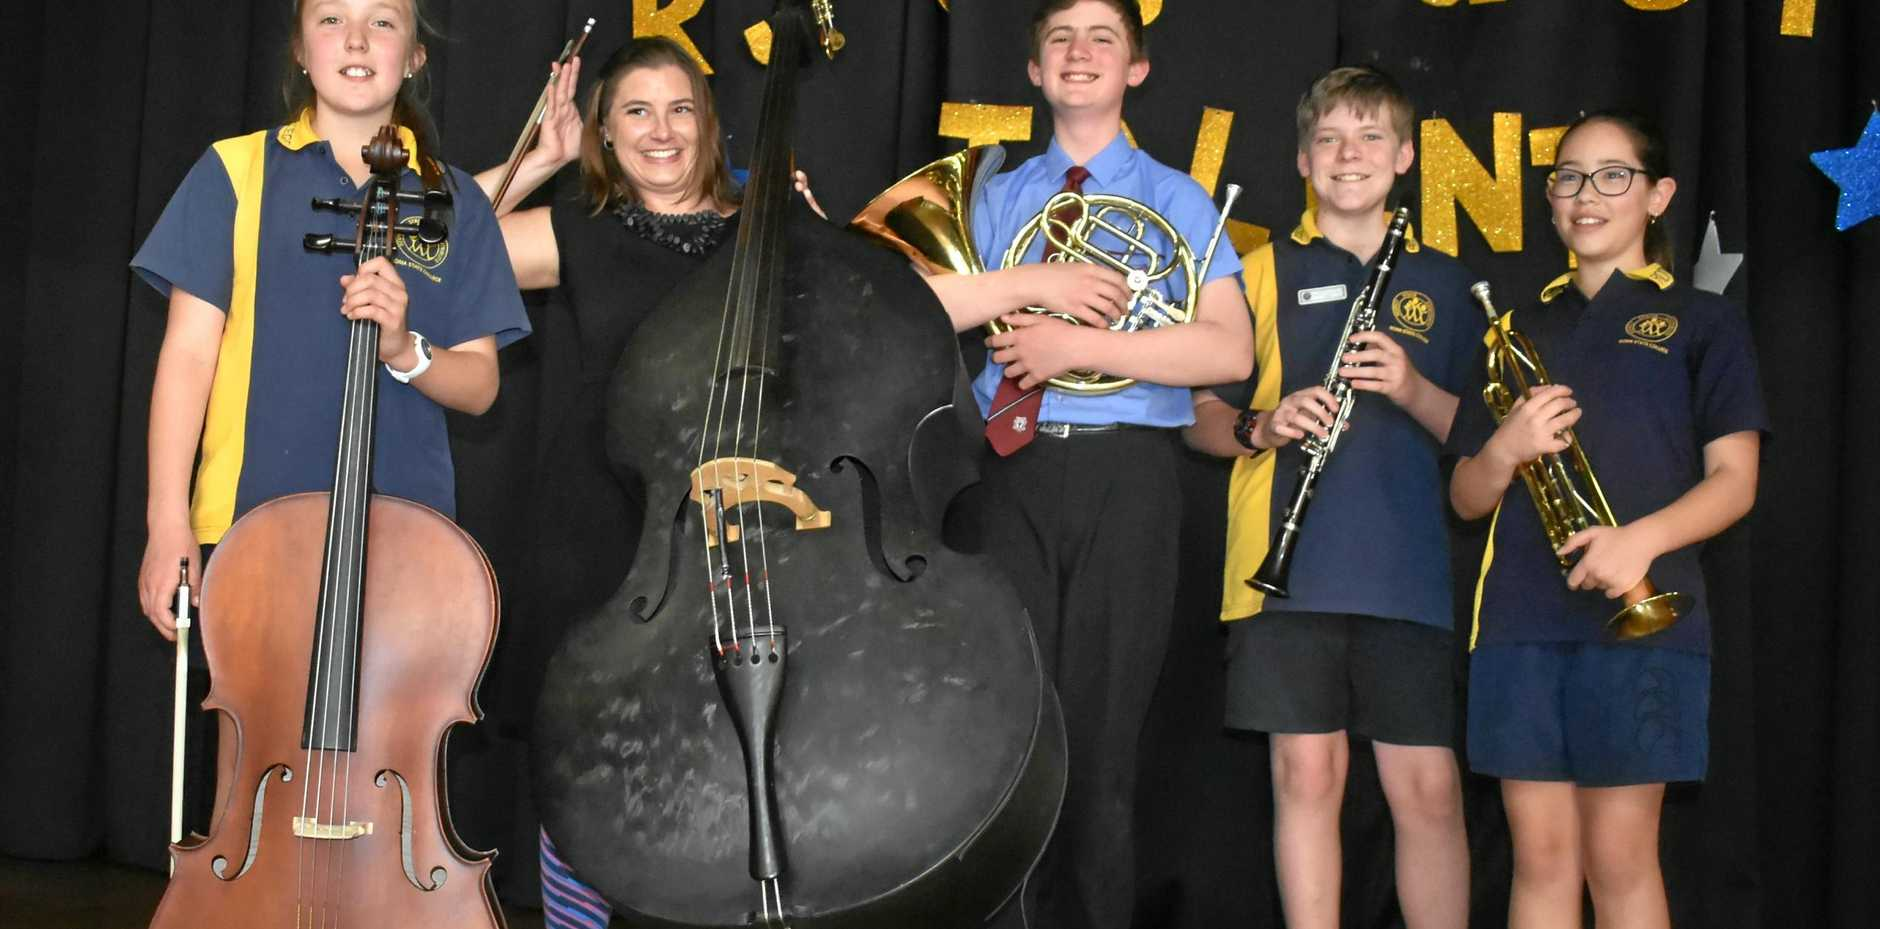 The Queensland Symphony Orchestra performed alongside students from local schools.